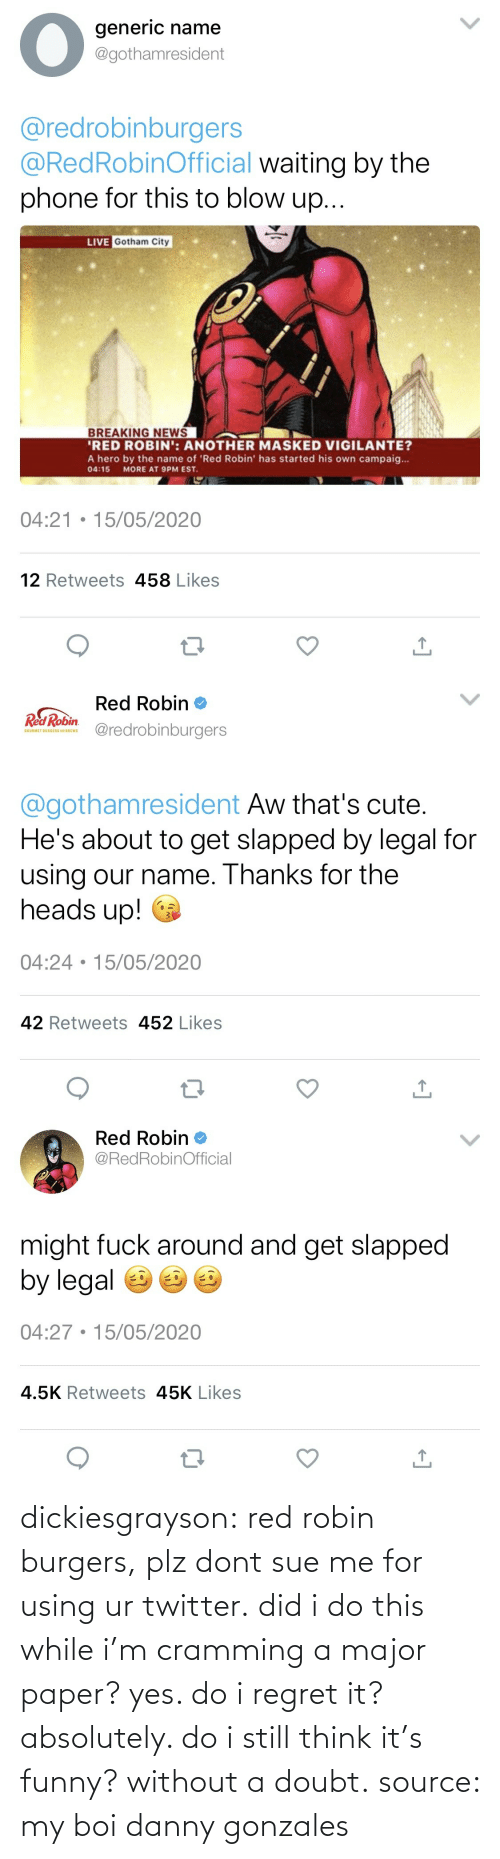 dont: dickiesgrayson:  red robin burgers, plz dont sue me for using ur twitter. did i do this while i'm cramming a major paper? yes. do i regret it? absolutely. do i still think it's funny? without a doubt. source: my boi danny gonzales